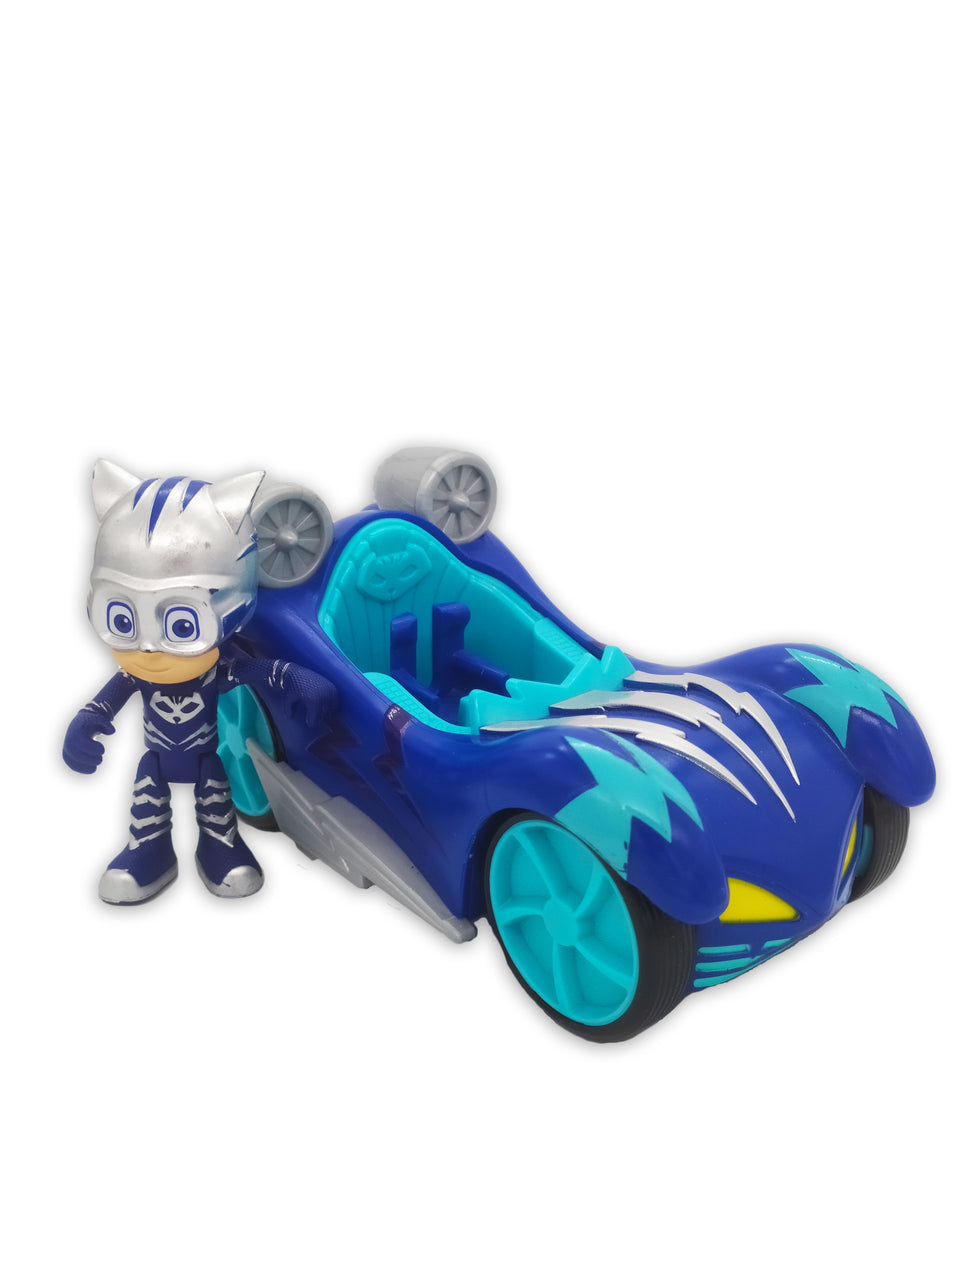 PJ Masks - Catboy Vehicle & Figure